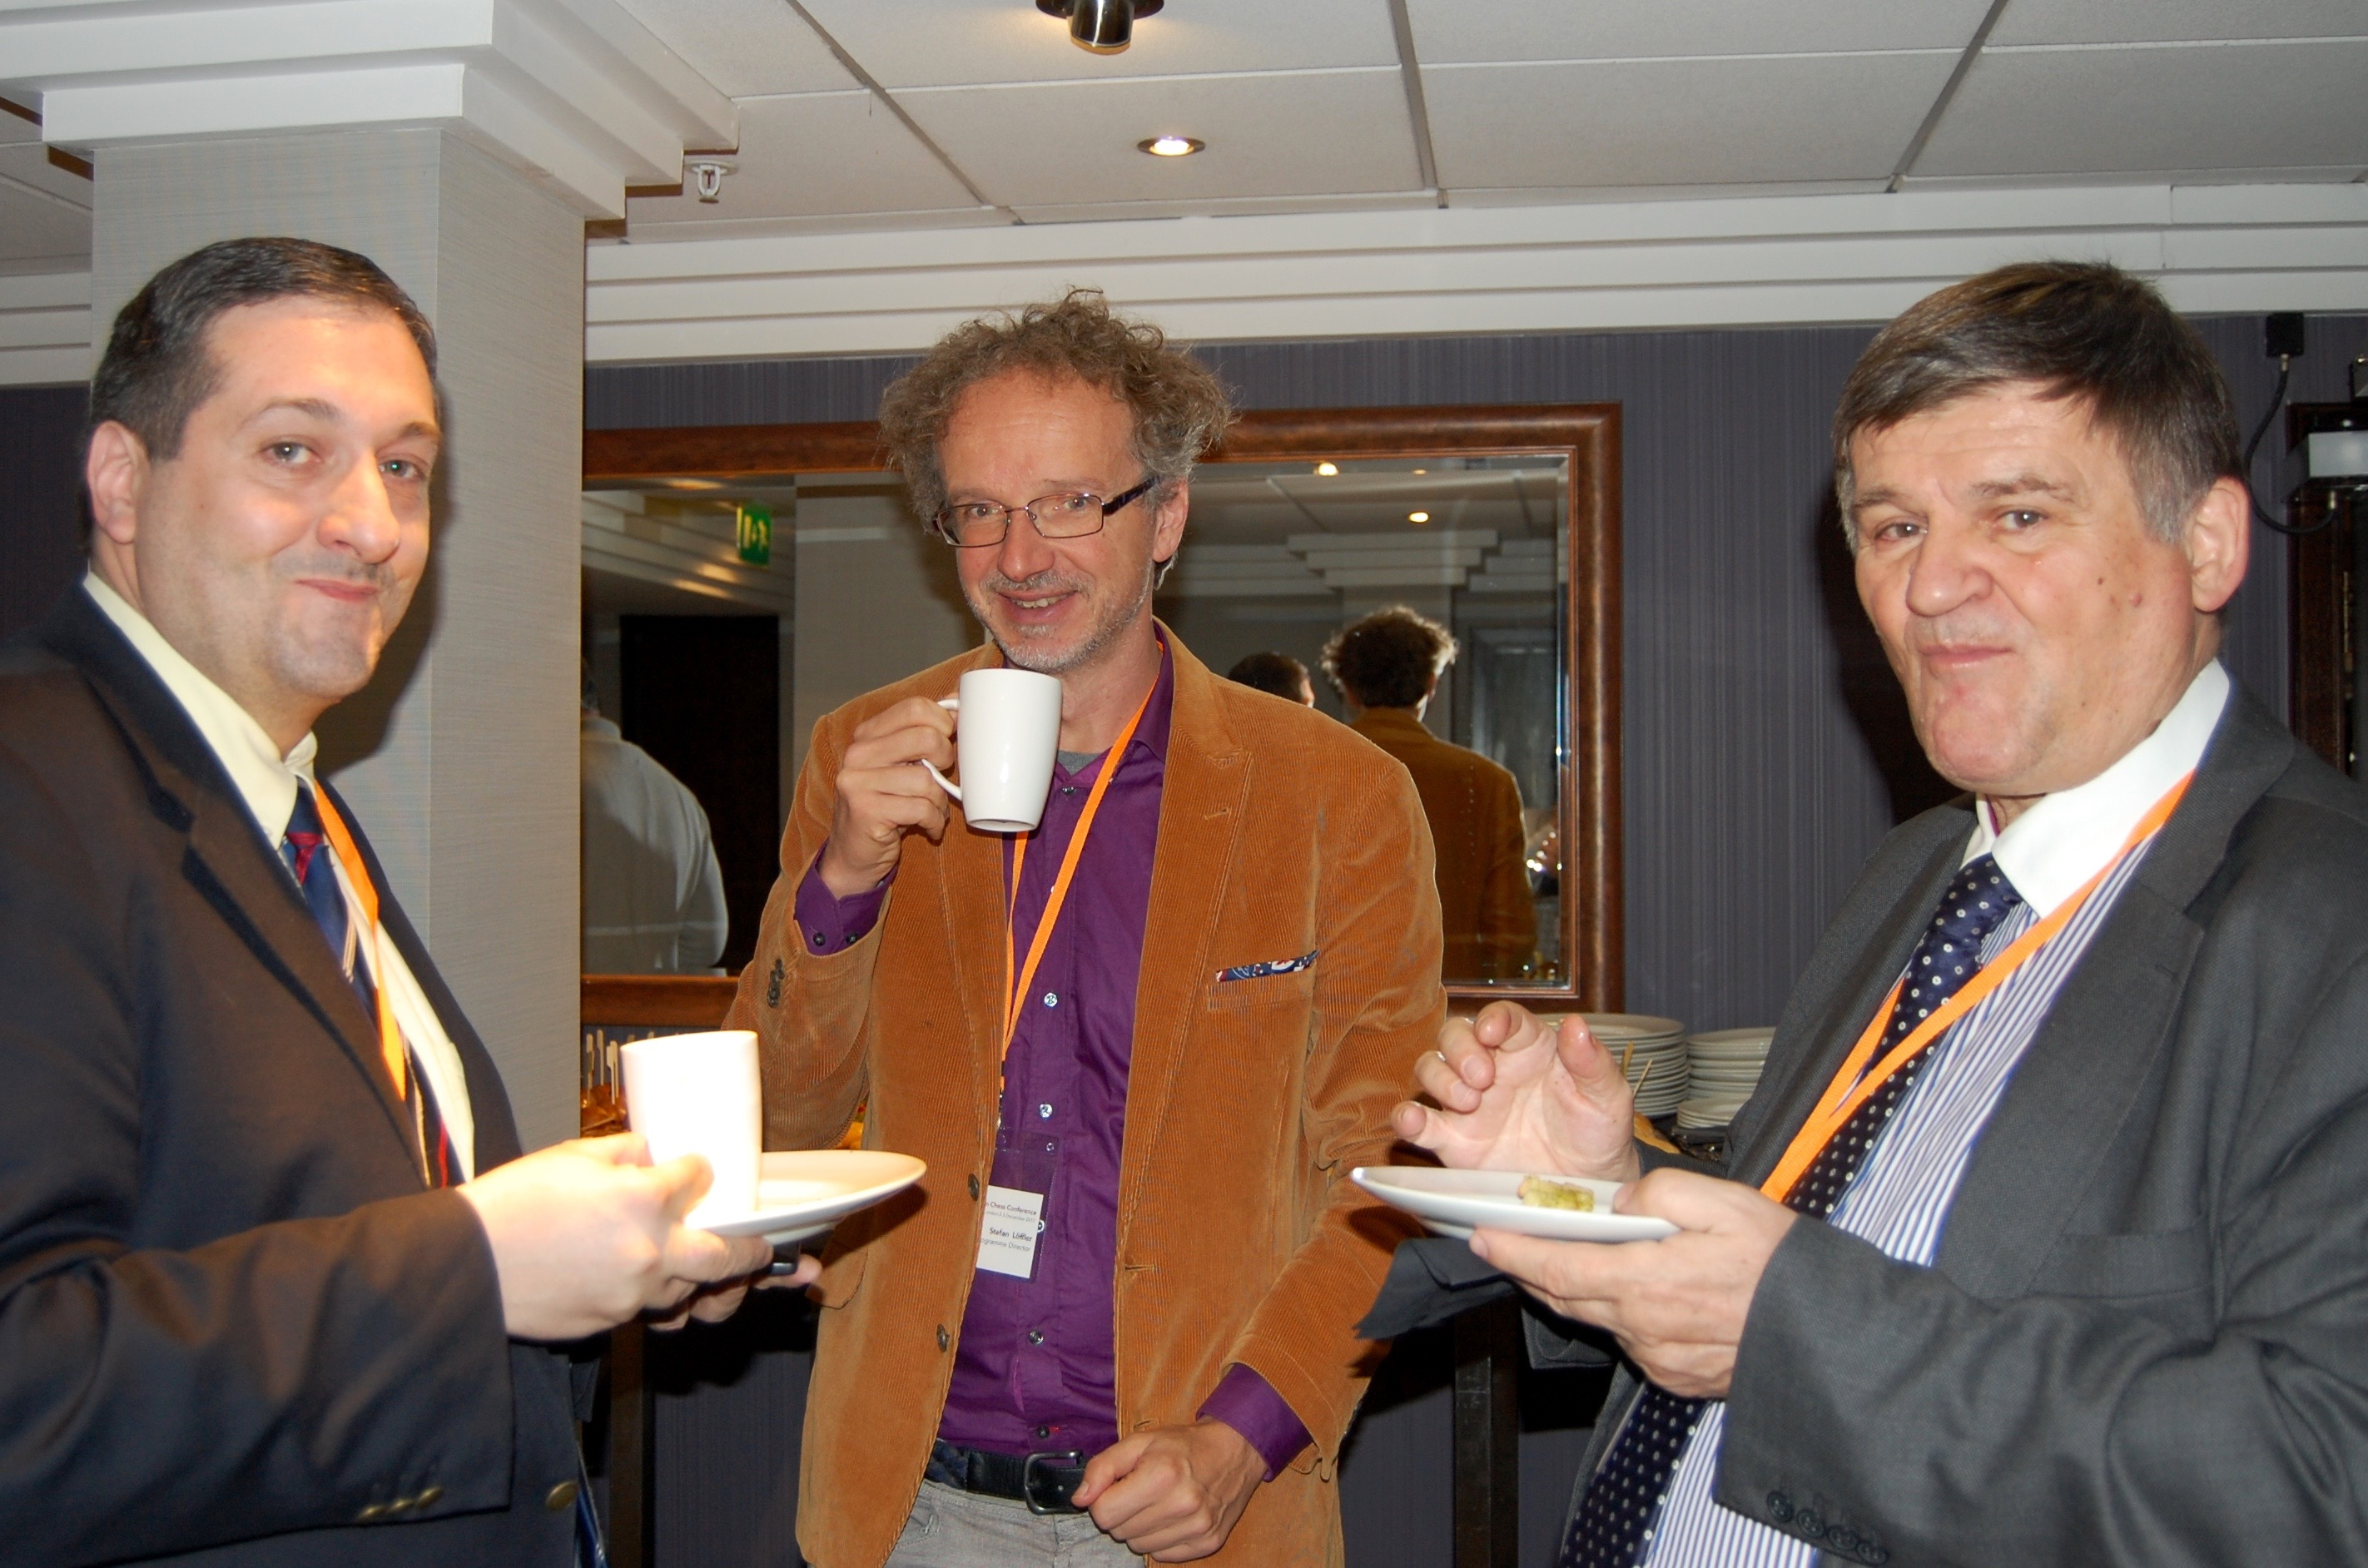 Luis Blasco, Stefan Loffler, Frantisek Jablonicky taking coffee at the London Chess Conference